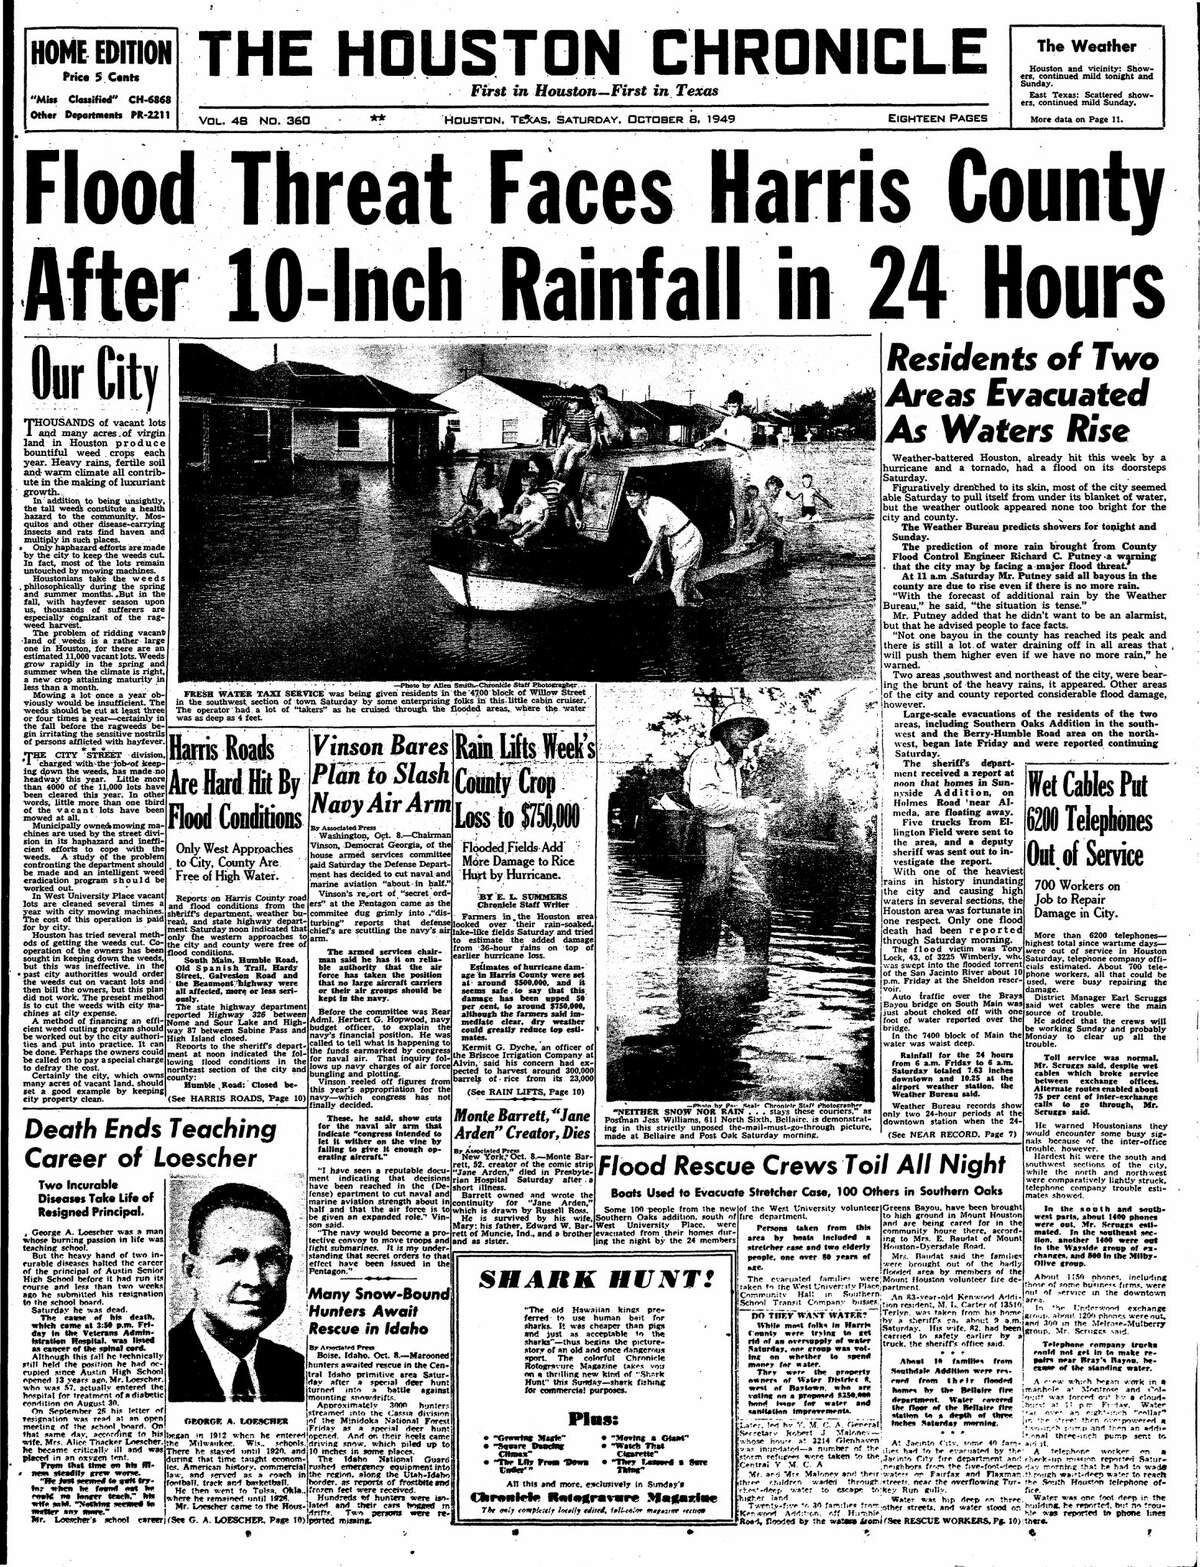 Houston Chronicle front page from Oct. 8, 1949.